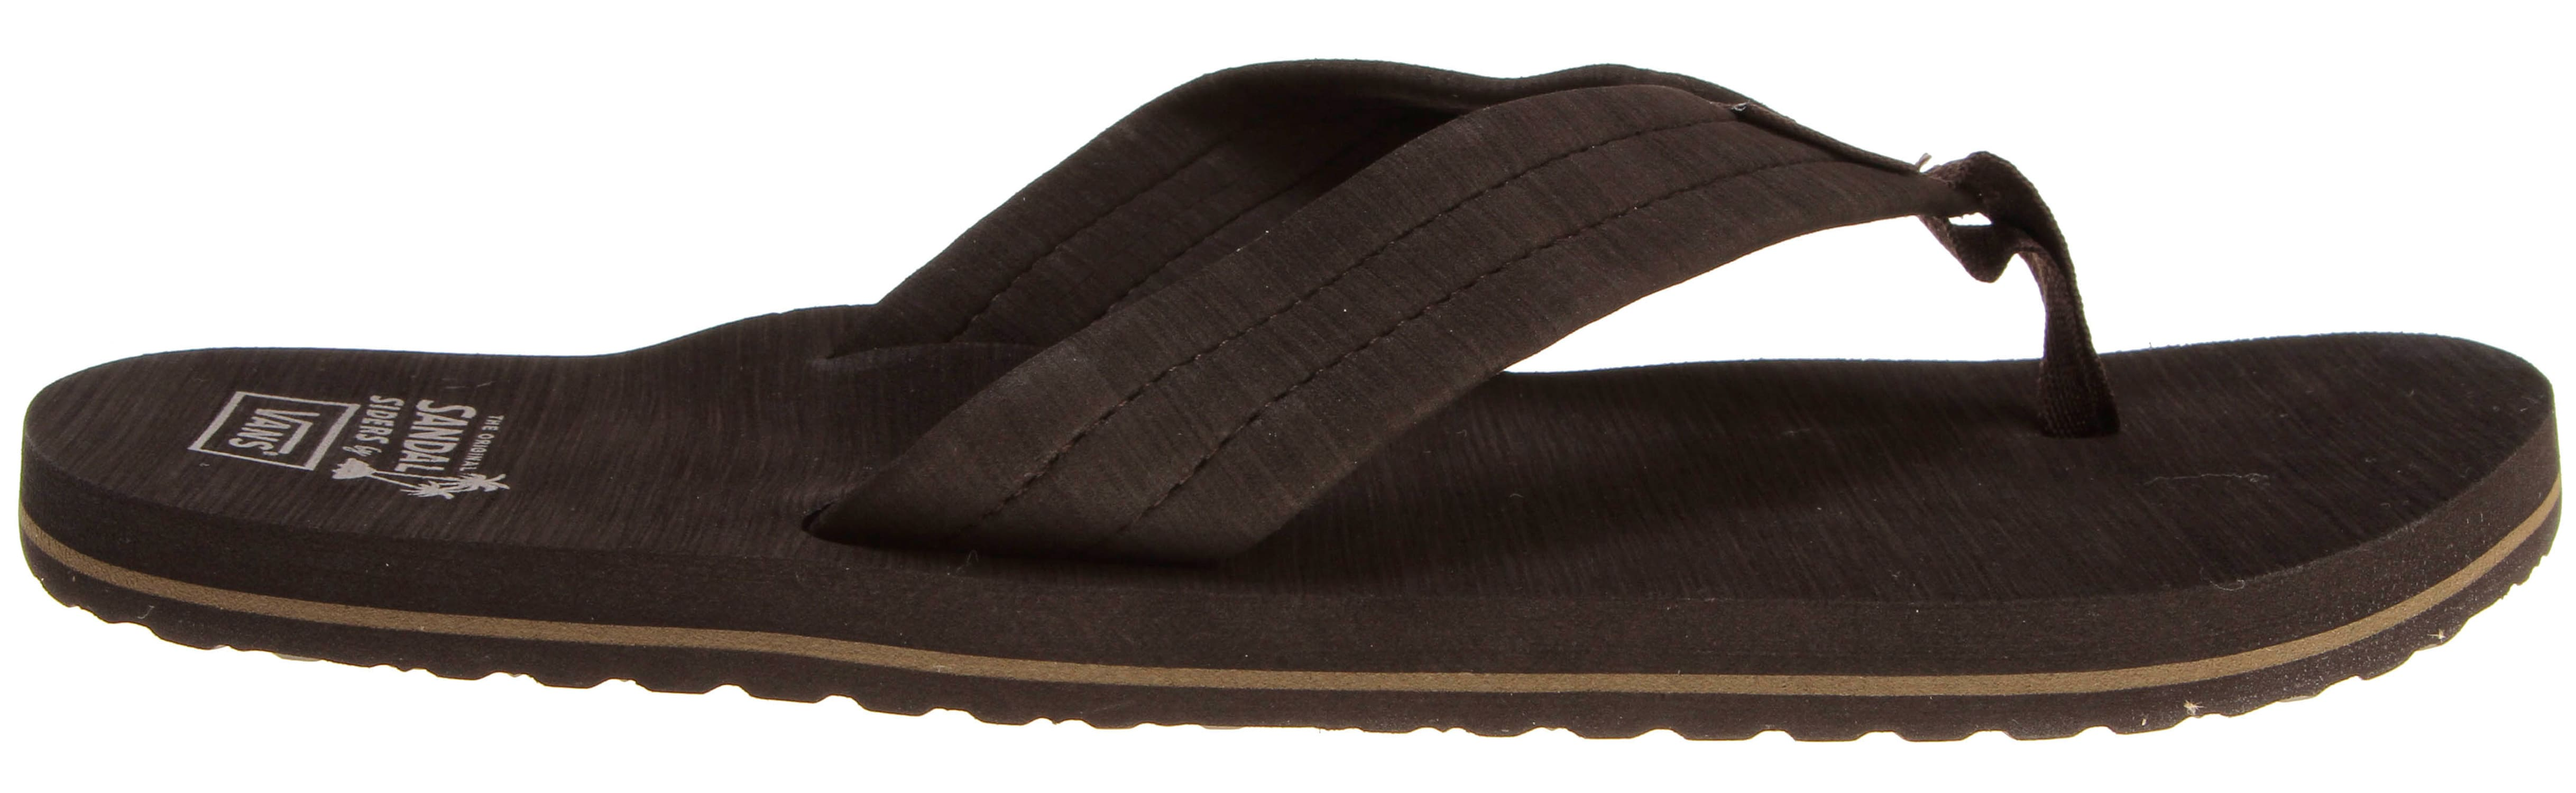 Shop for Vans Thresher Sandals Coffee/Shitake/Coffee - Men's